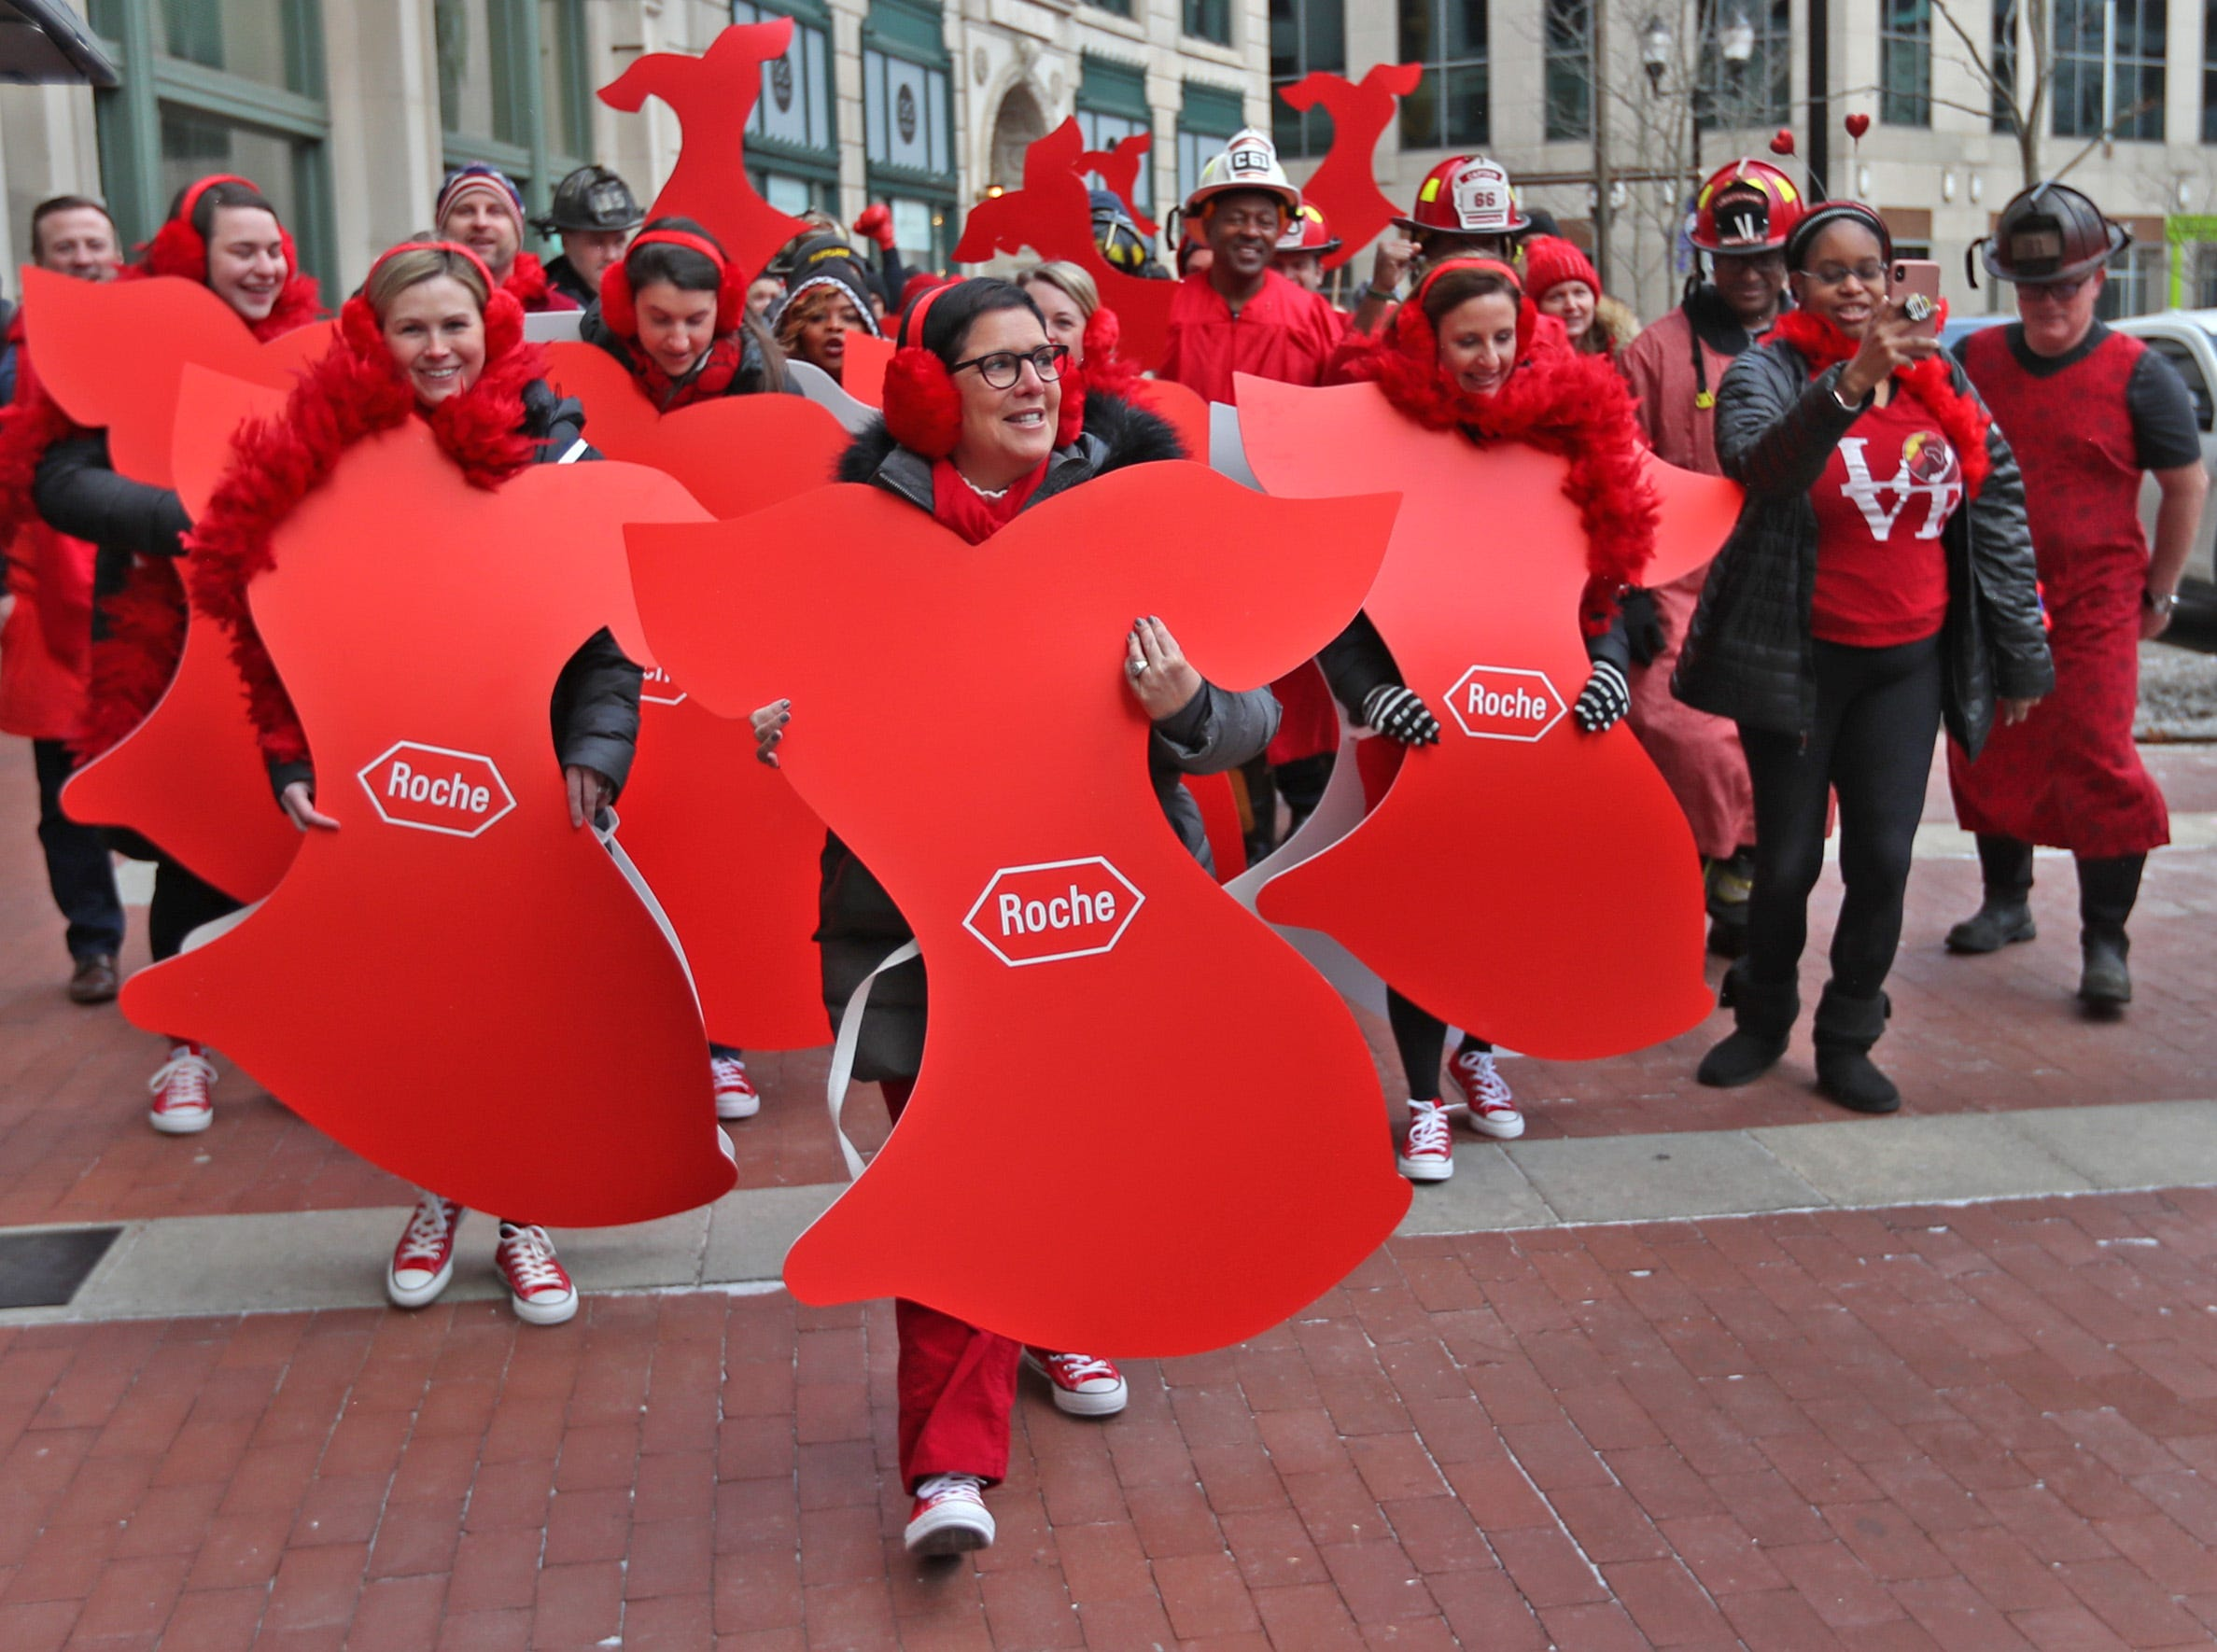 A sea of red, led by Roche employees in red cutout dresses, start the dash around Monument Circle for the Red Dress Dash, Friday, Feb. 8, 2019.  Go Red for Women 2019 Chair Jennifer Zinn, center, leads the way.  The American Heart Association put on the seventh annual event to support women's heart health.  The event raises awareness for the American Heart Association's Go Red For Women movement.  Heart disease is the leading cause of death among women.